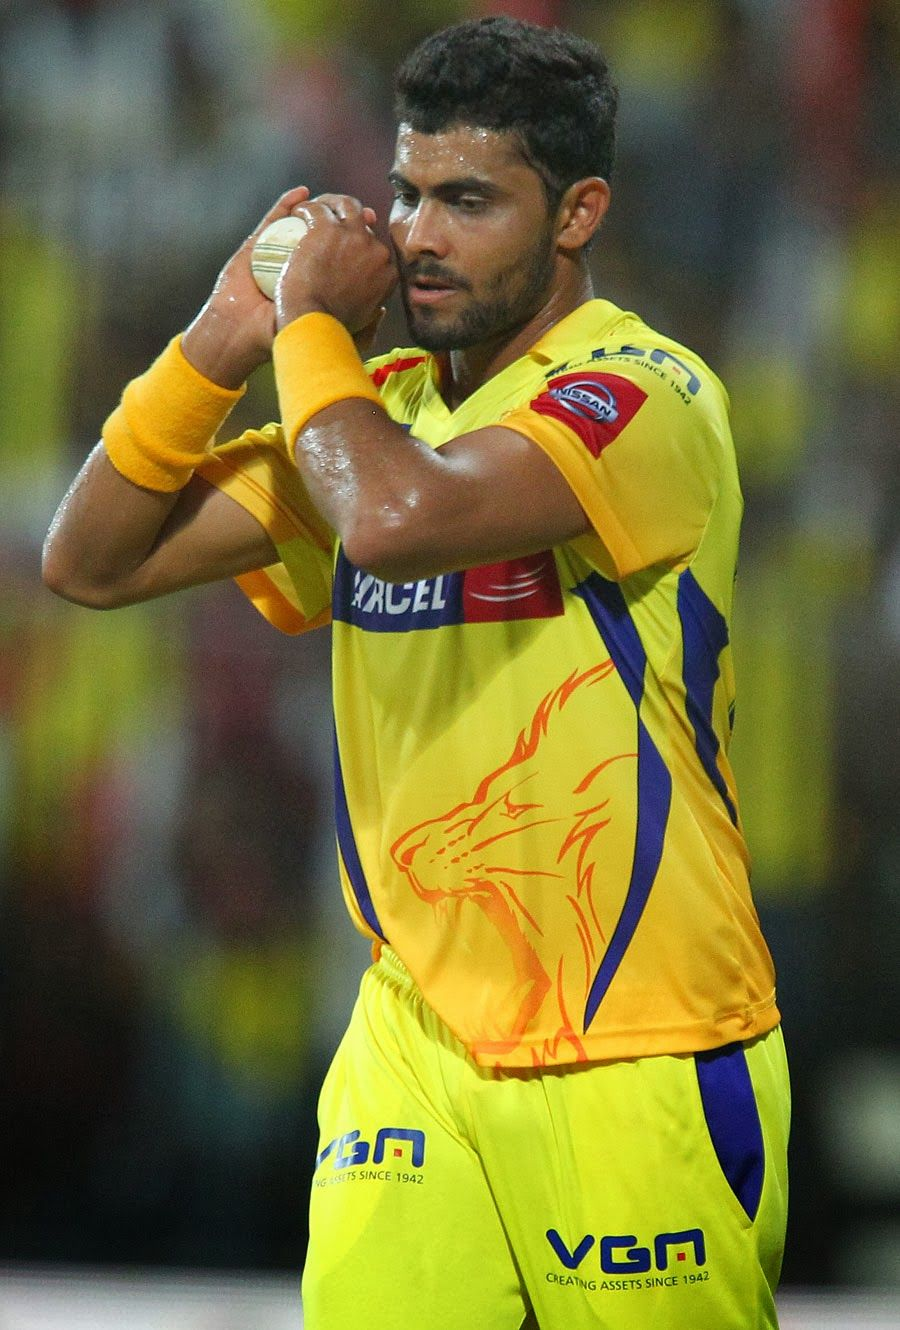 Csk Wallpapers Jadeja Info Chennai Super Kings Hd